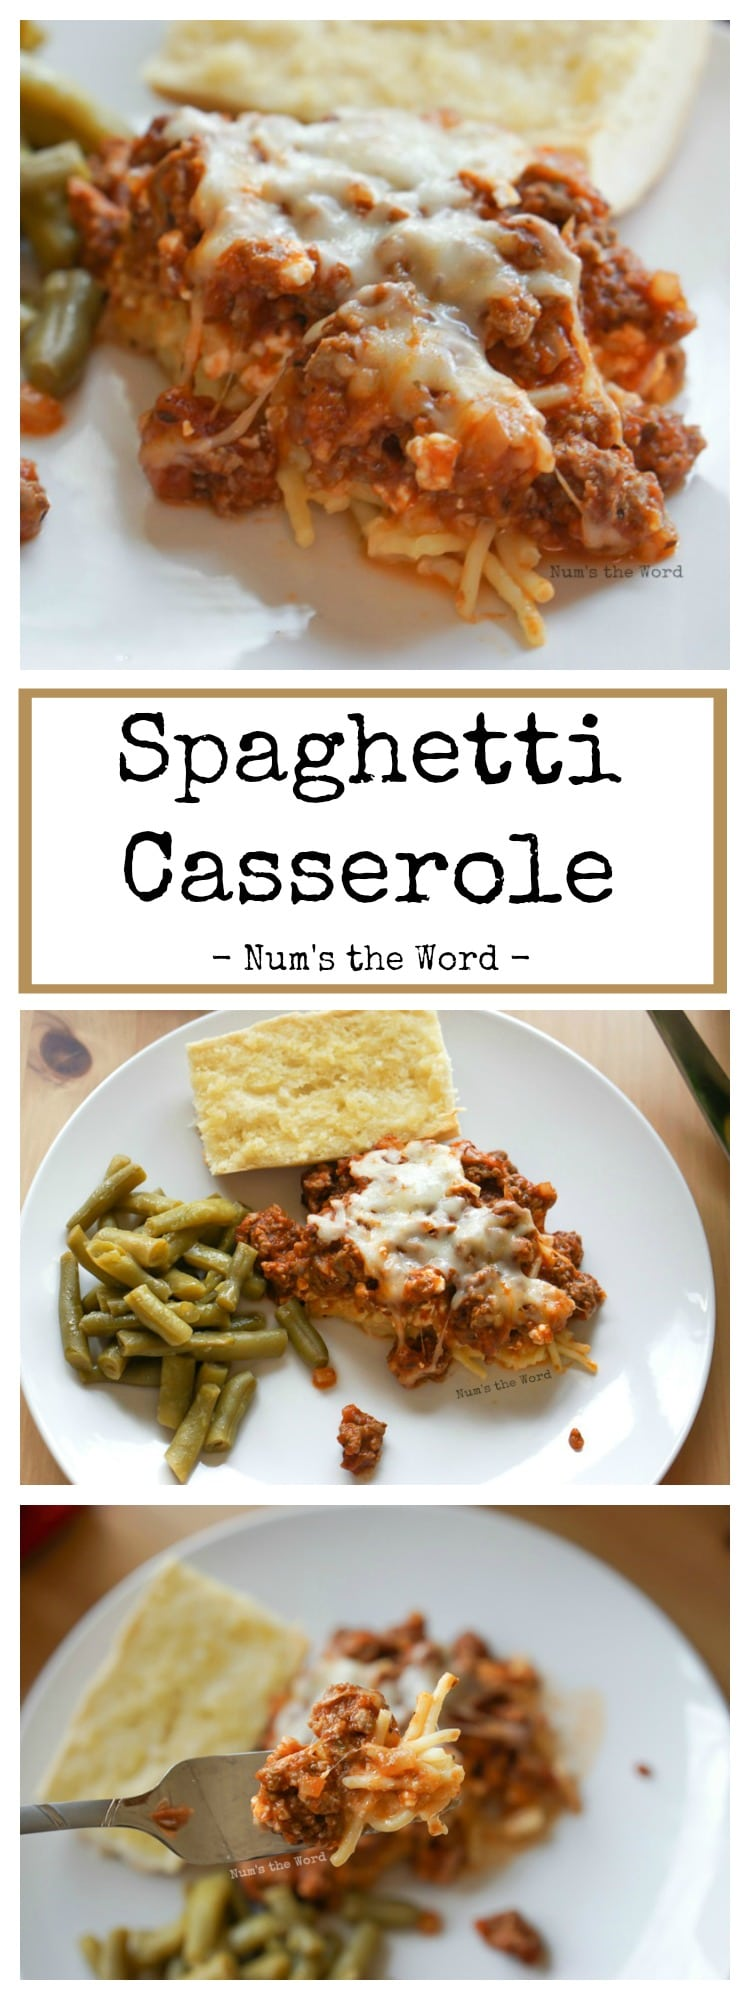 Spaghetti Casserole - collage of images for Pinterest long pin